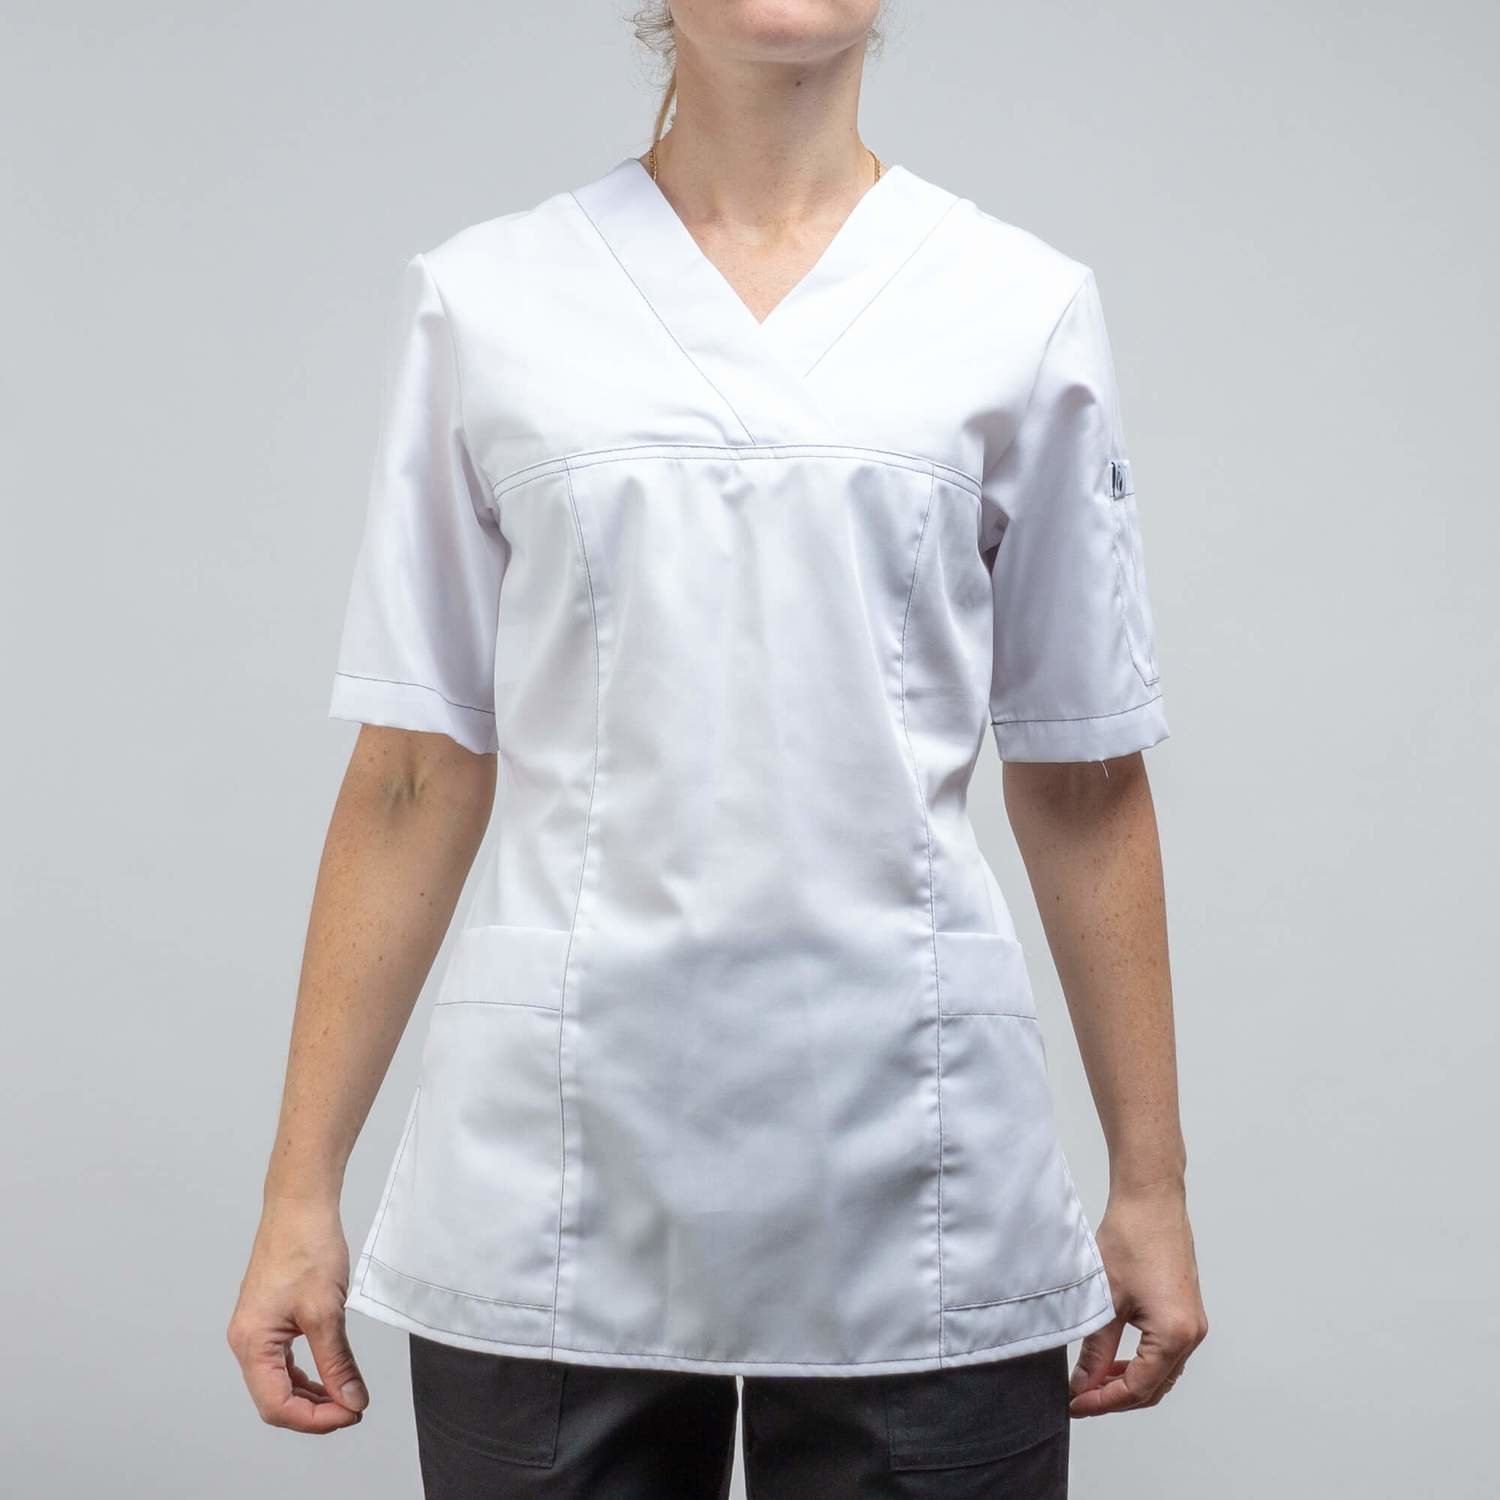 570WS2 - CHEF'S TUNIC